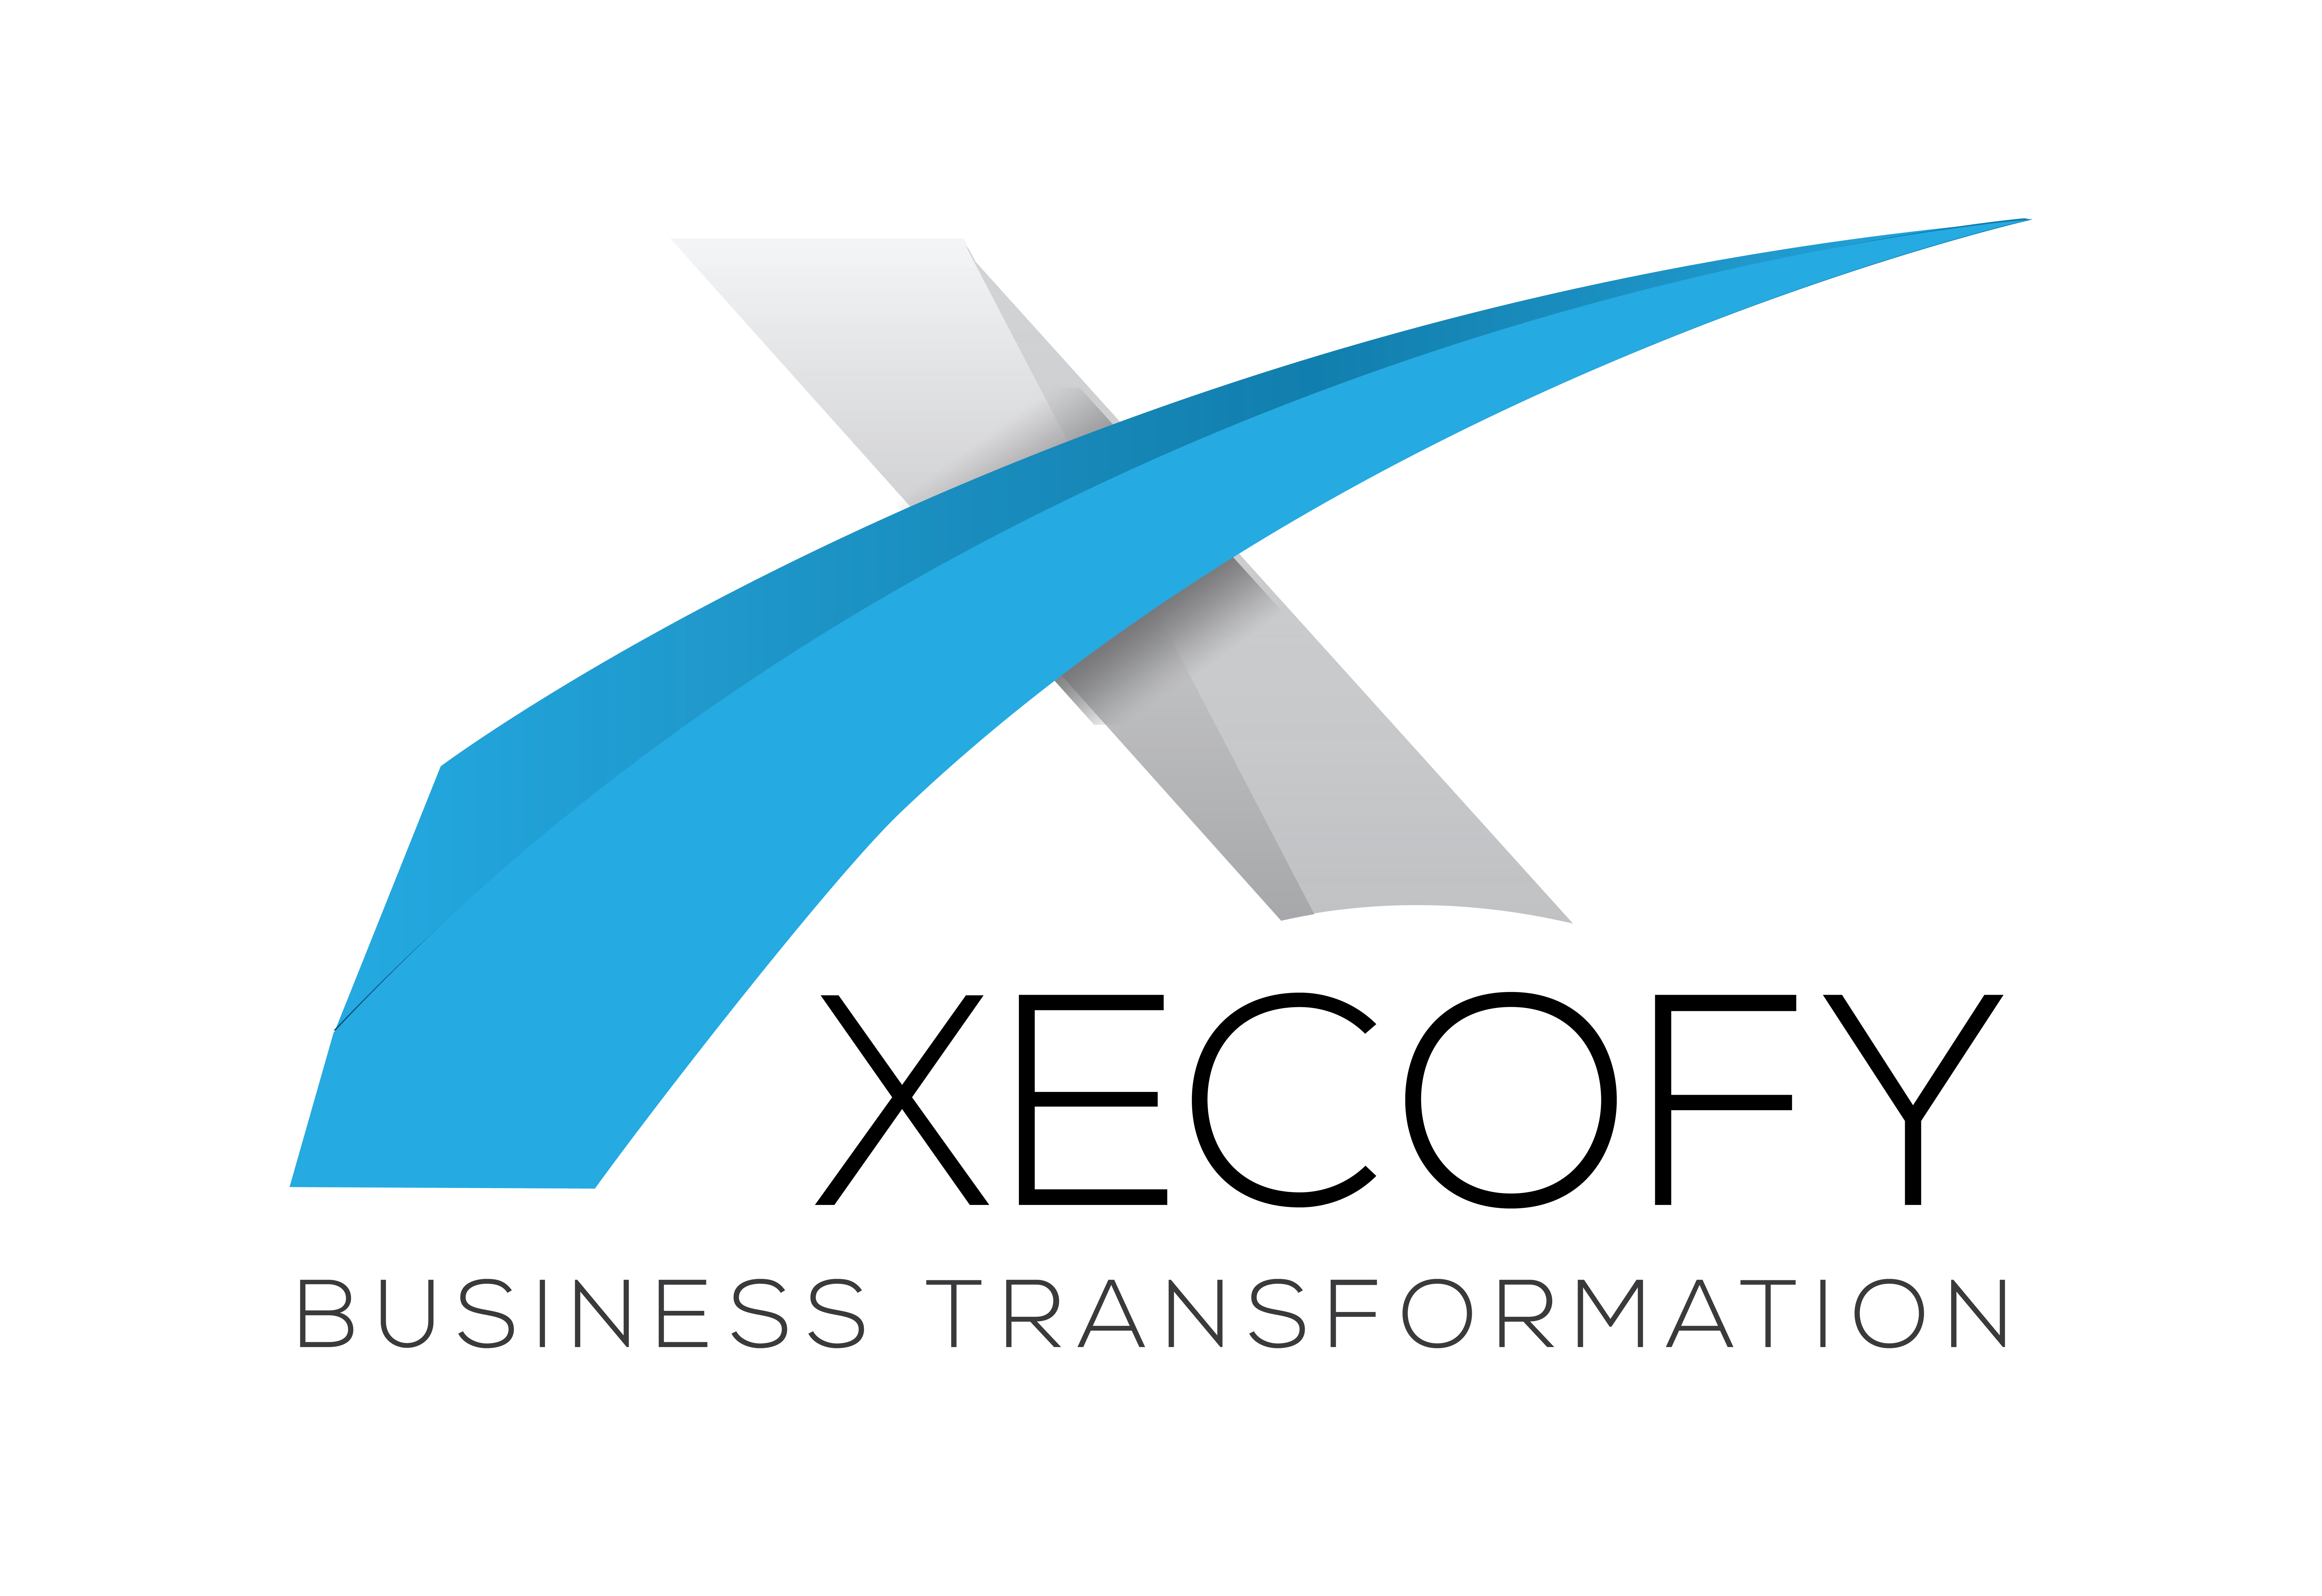 Xecofy Business Transformation